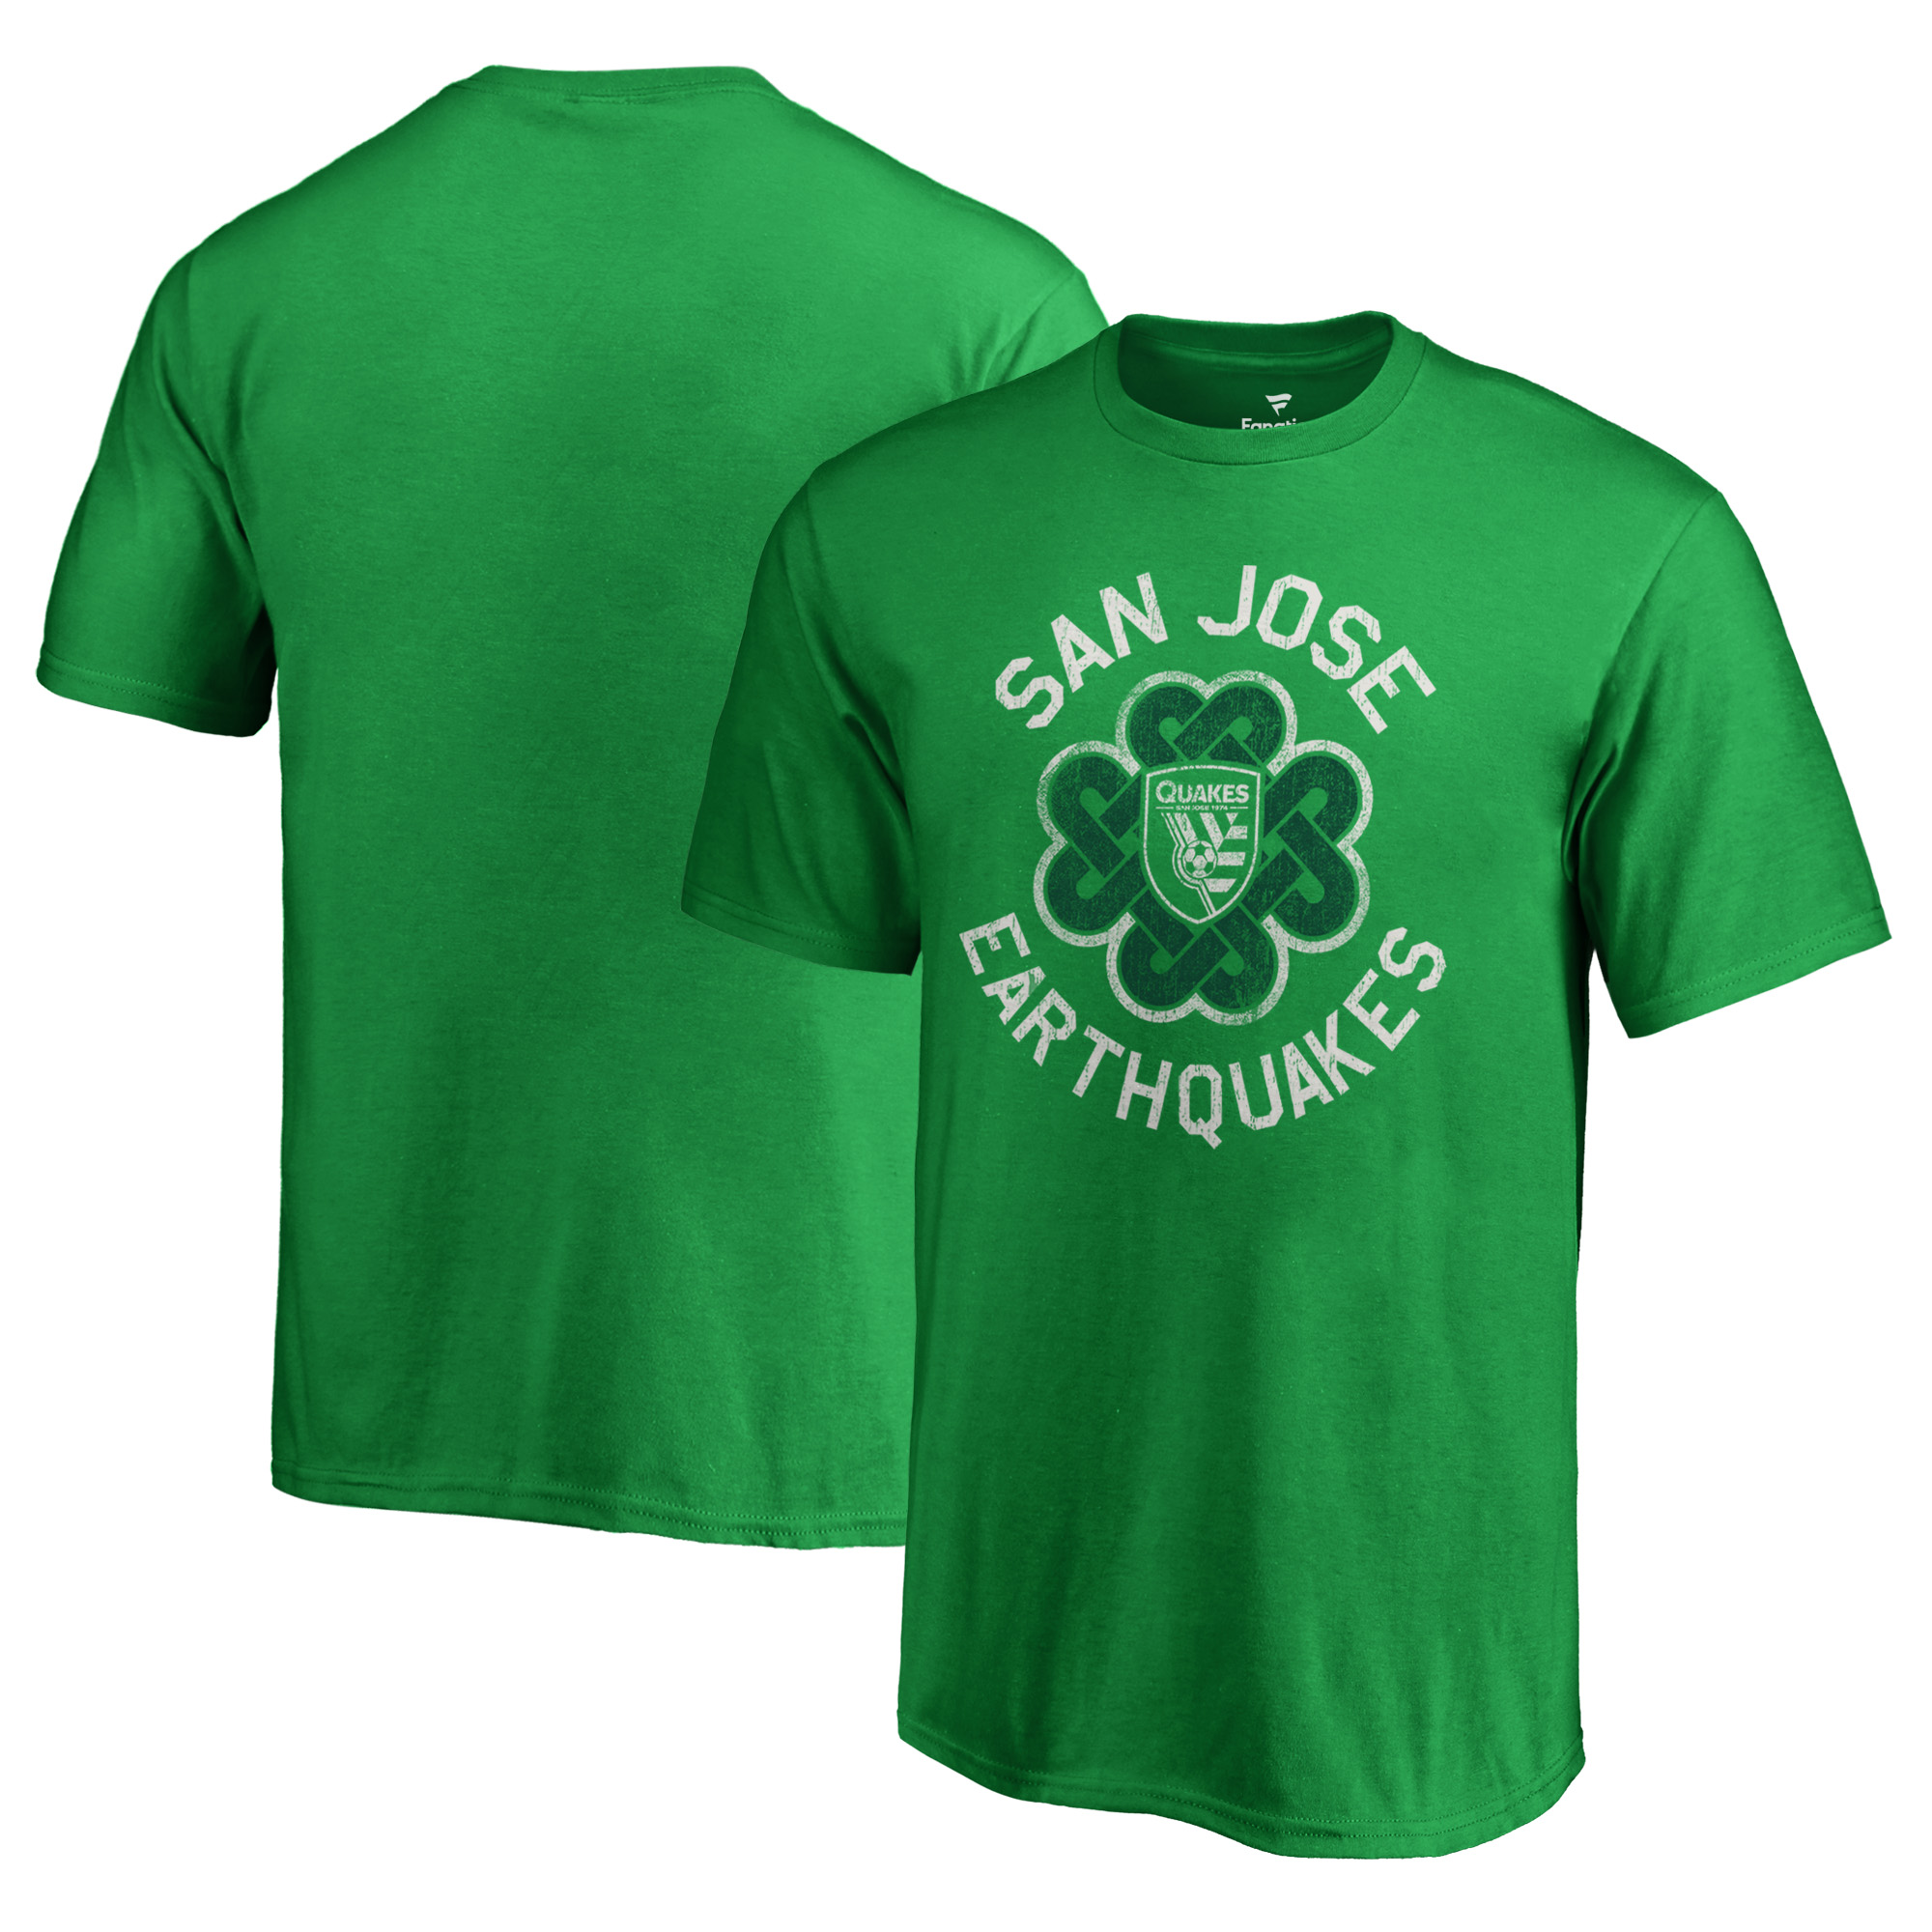 San Jose Earthquakes Fanatics Branded Youth St. Patrick's Day Luck Tradition T-Shirt - Kelly Green